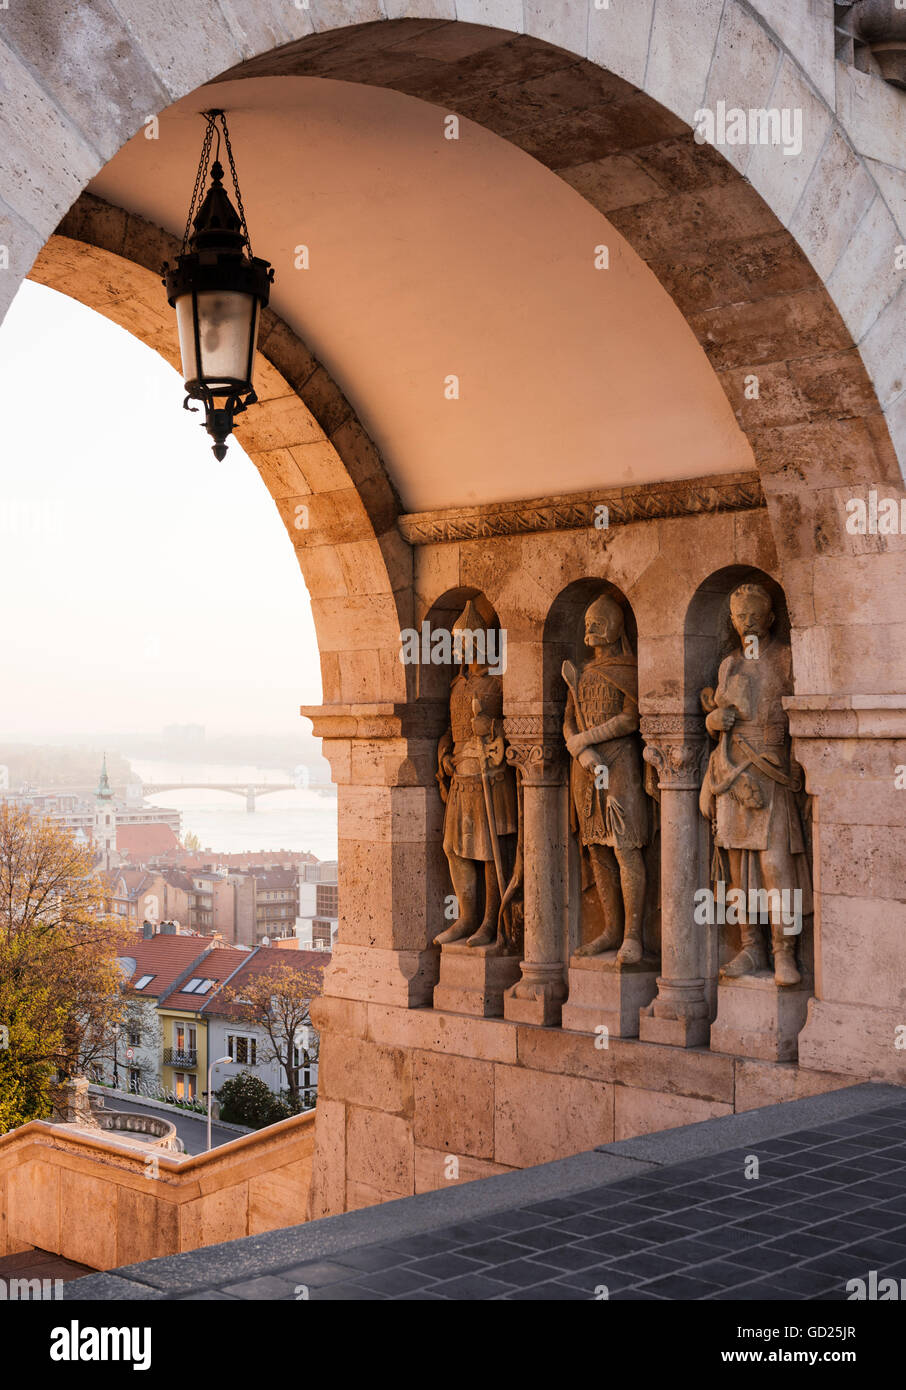 Fisherman's Bastion, Budapest, Hungary, Europe - Stock Image